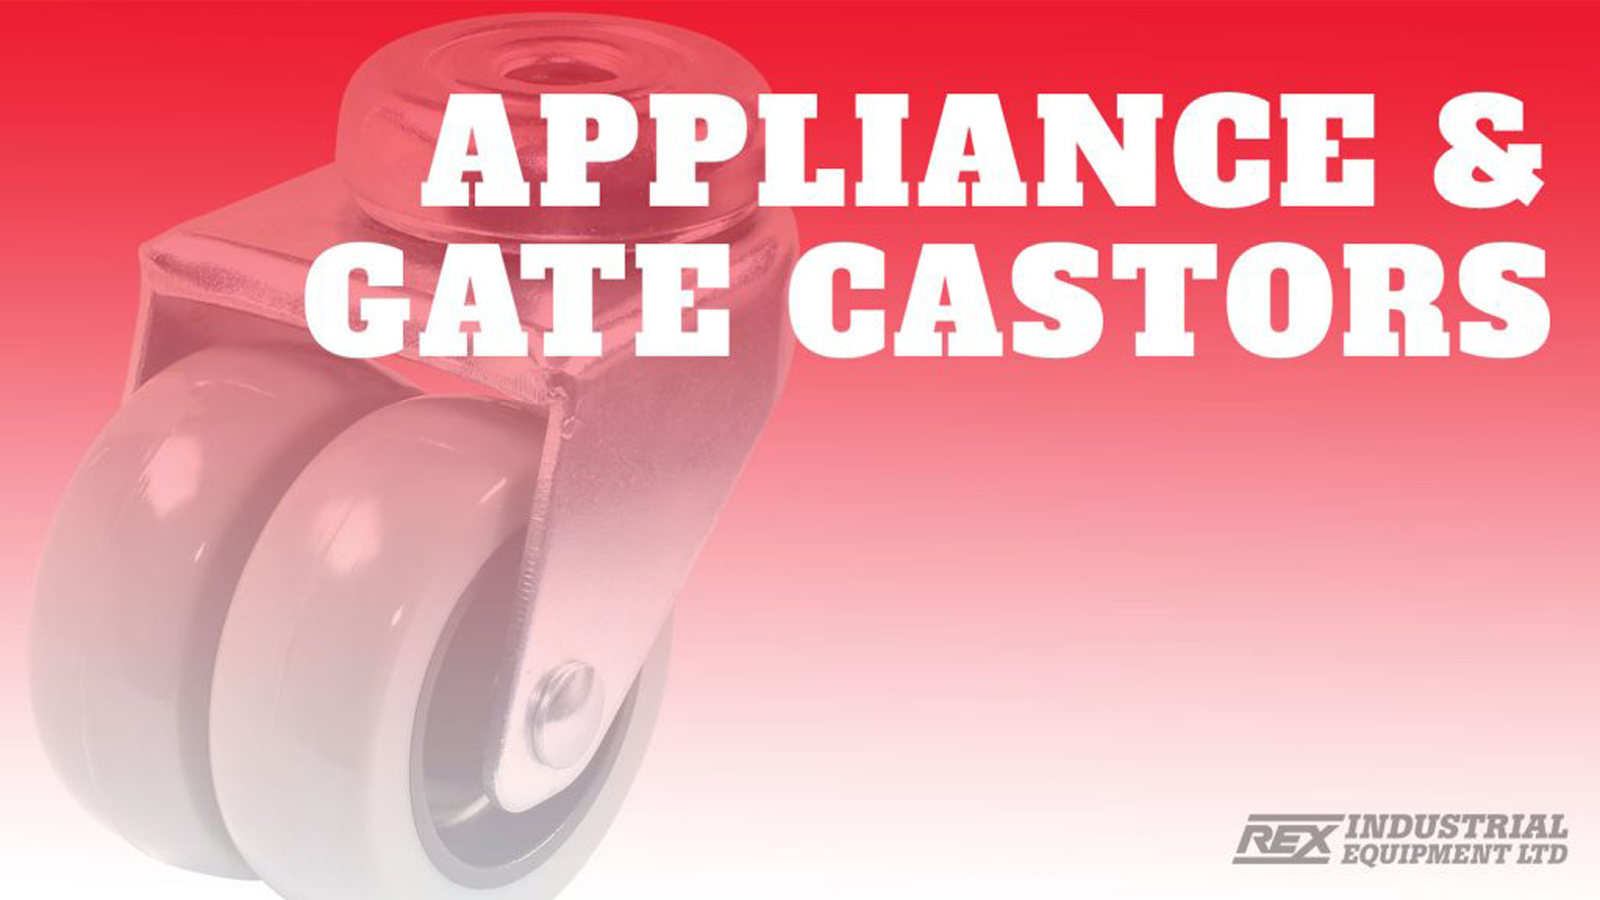 Appliance-&-Gate-Castors-Banner-1600-x-900